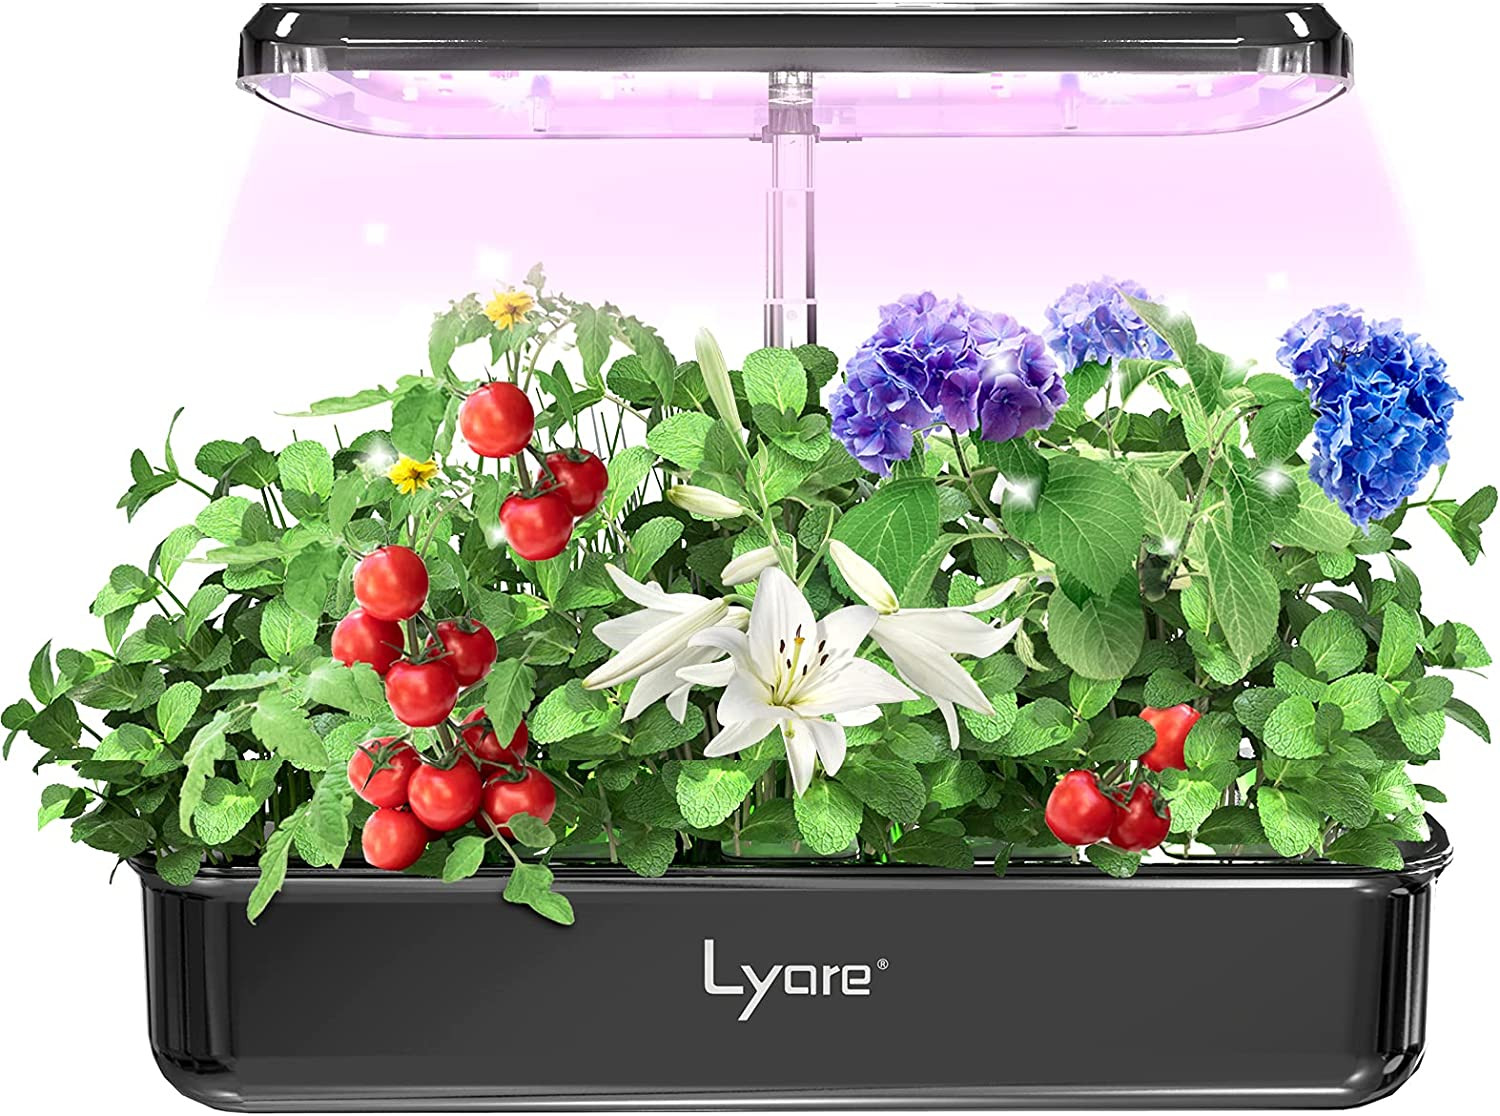 Lyare Hydroponics Growing System,10 Pods Indoor Herb Garden Kit with LED Grow Light, Height Adjustable Smart Garden Planter, Automatic Timer Germination Kit for Home Kitchen Gardening Herb Starter Kit